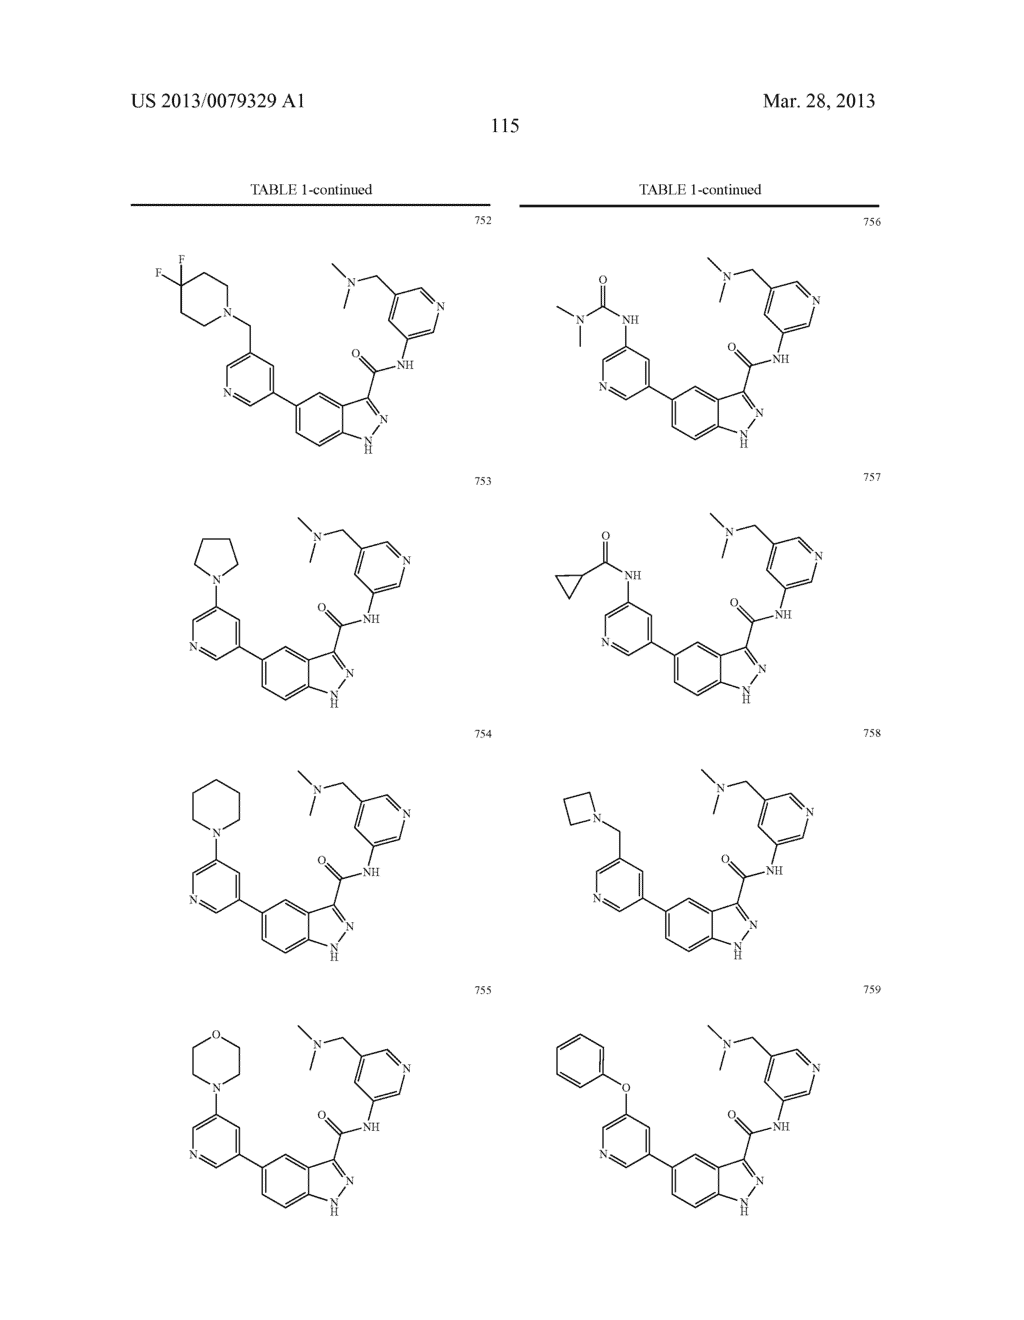 INDAZOLE-3-CARBOXAMIDES AND THEIR USE AS WNT/Beta-CATENIN SIGNALING     PATHWAY INHIBITORS - diagram, schematic, and image 116